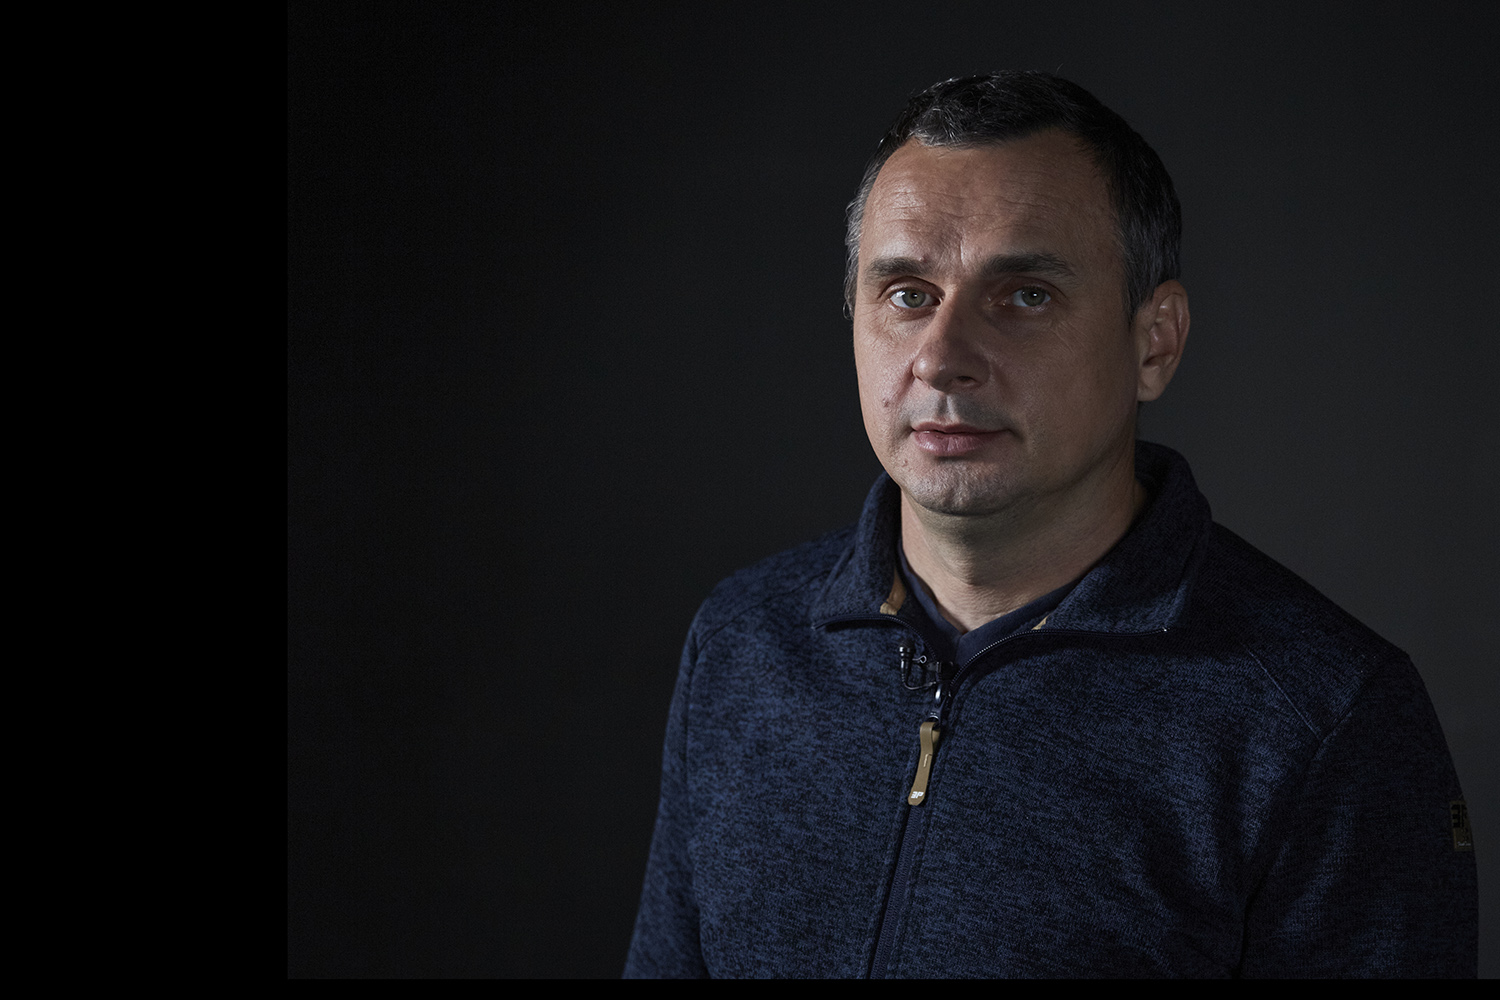 Oleg Sentsov and his Crimea